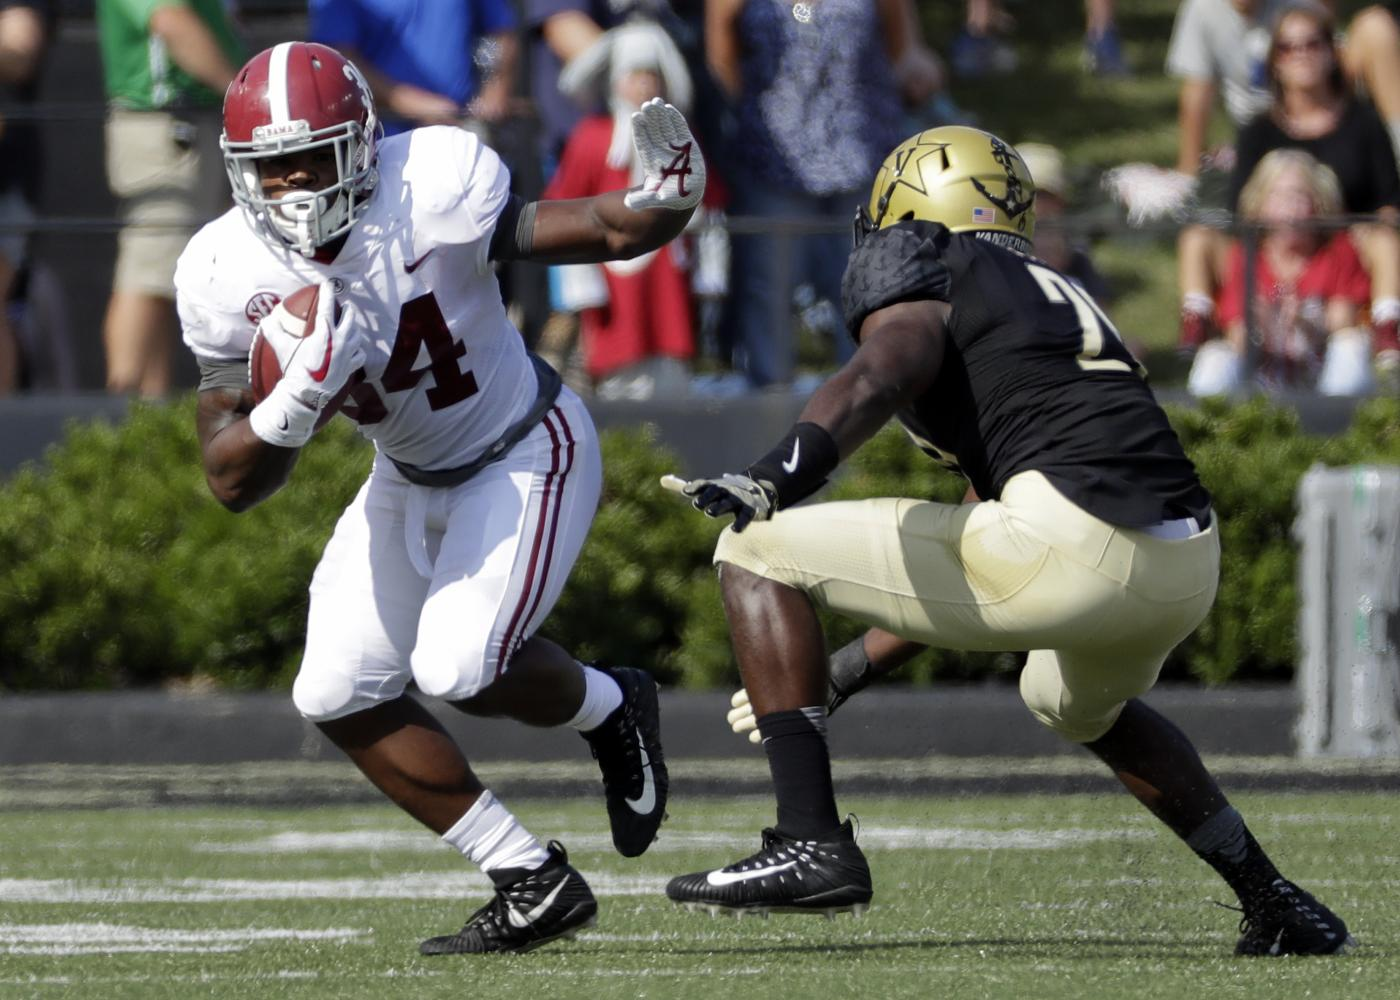 Alabama running back Damien Harris (34) runs past Vanderbilt linebacker Oren Burks (20) in the first half of an NCAA college football game Saturday, Sept. 23, 2017, in Nashville, Tenn. Harris ran for a career-high 151 yards and three touchdowns as top-ranked Alabama routed Vanderbilt 59-0 Saturday in the Southeastern Conference opener for both teams. (AP Photo/Mark Humphrey)